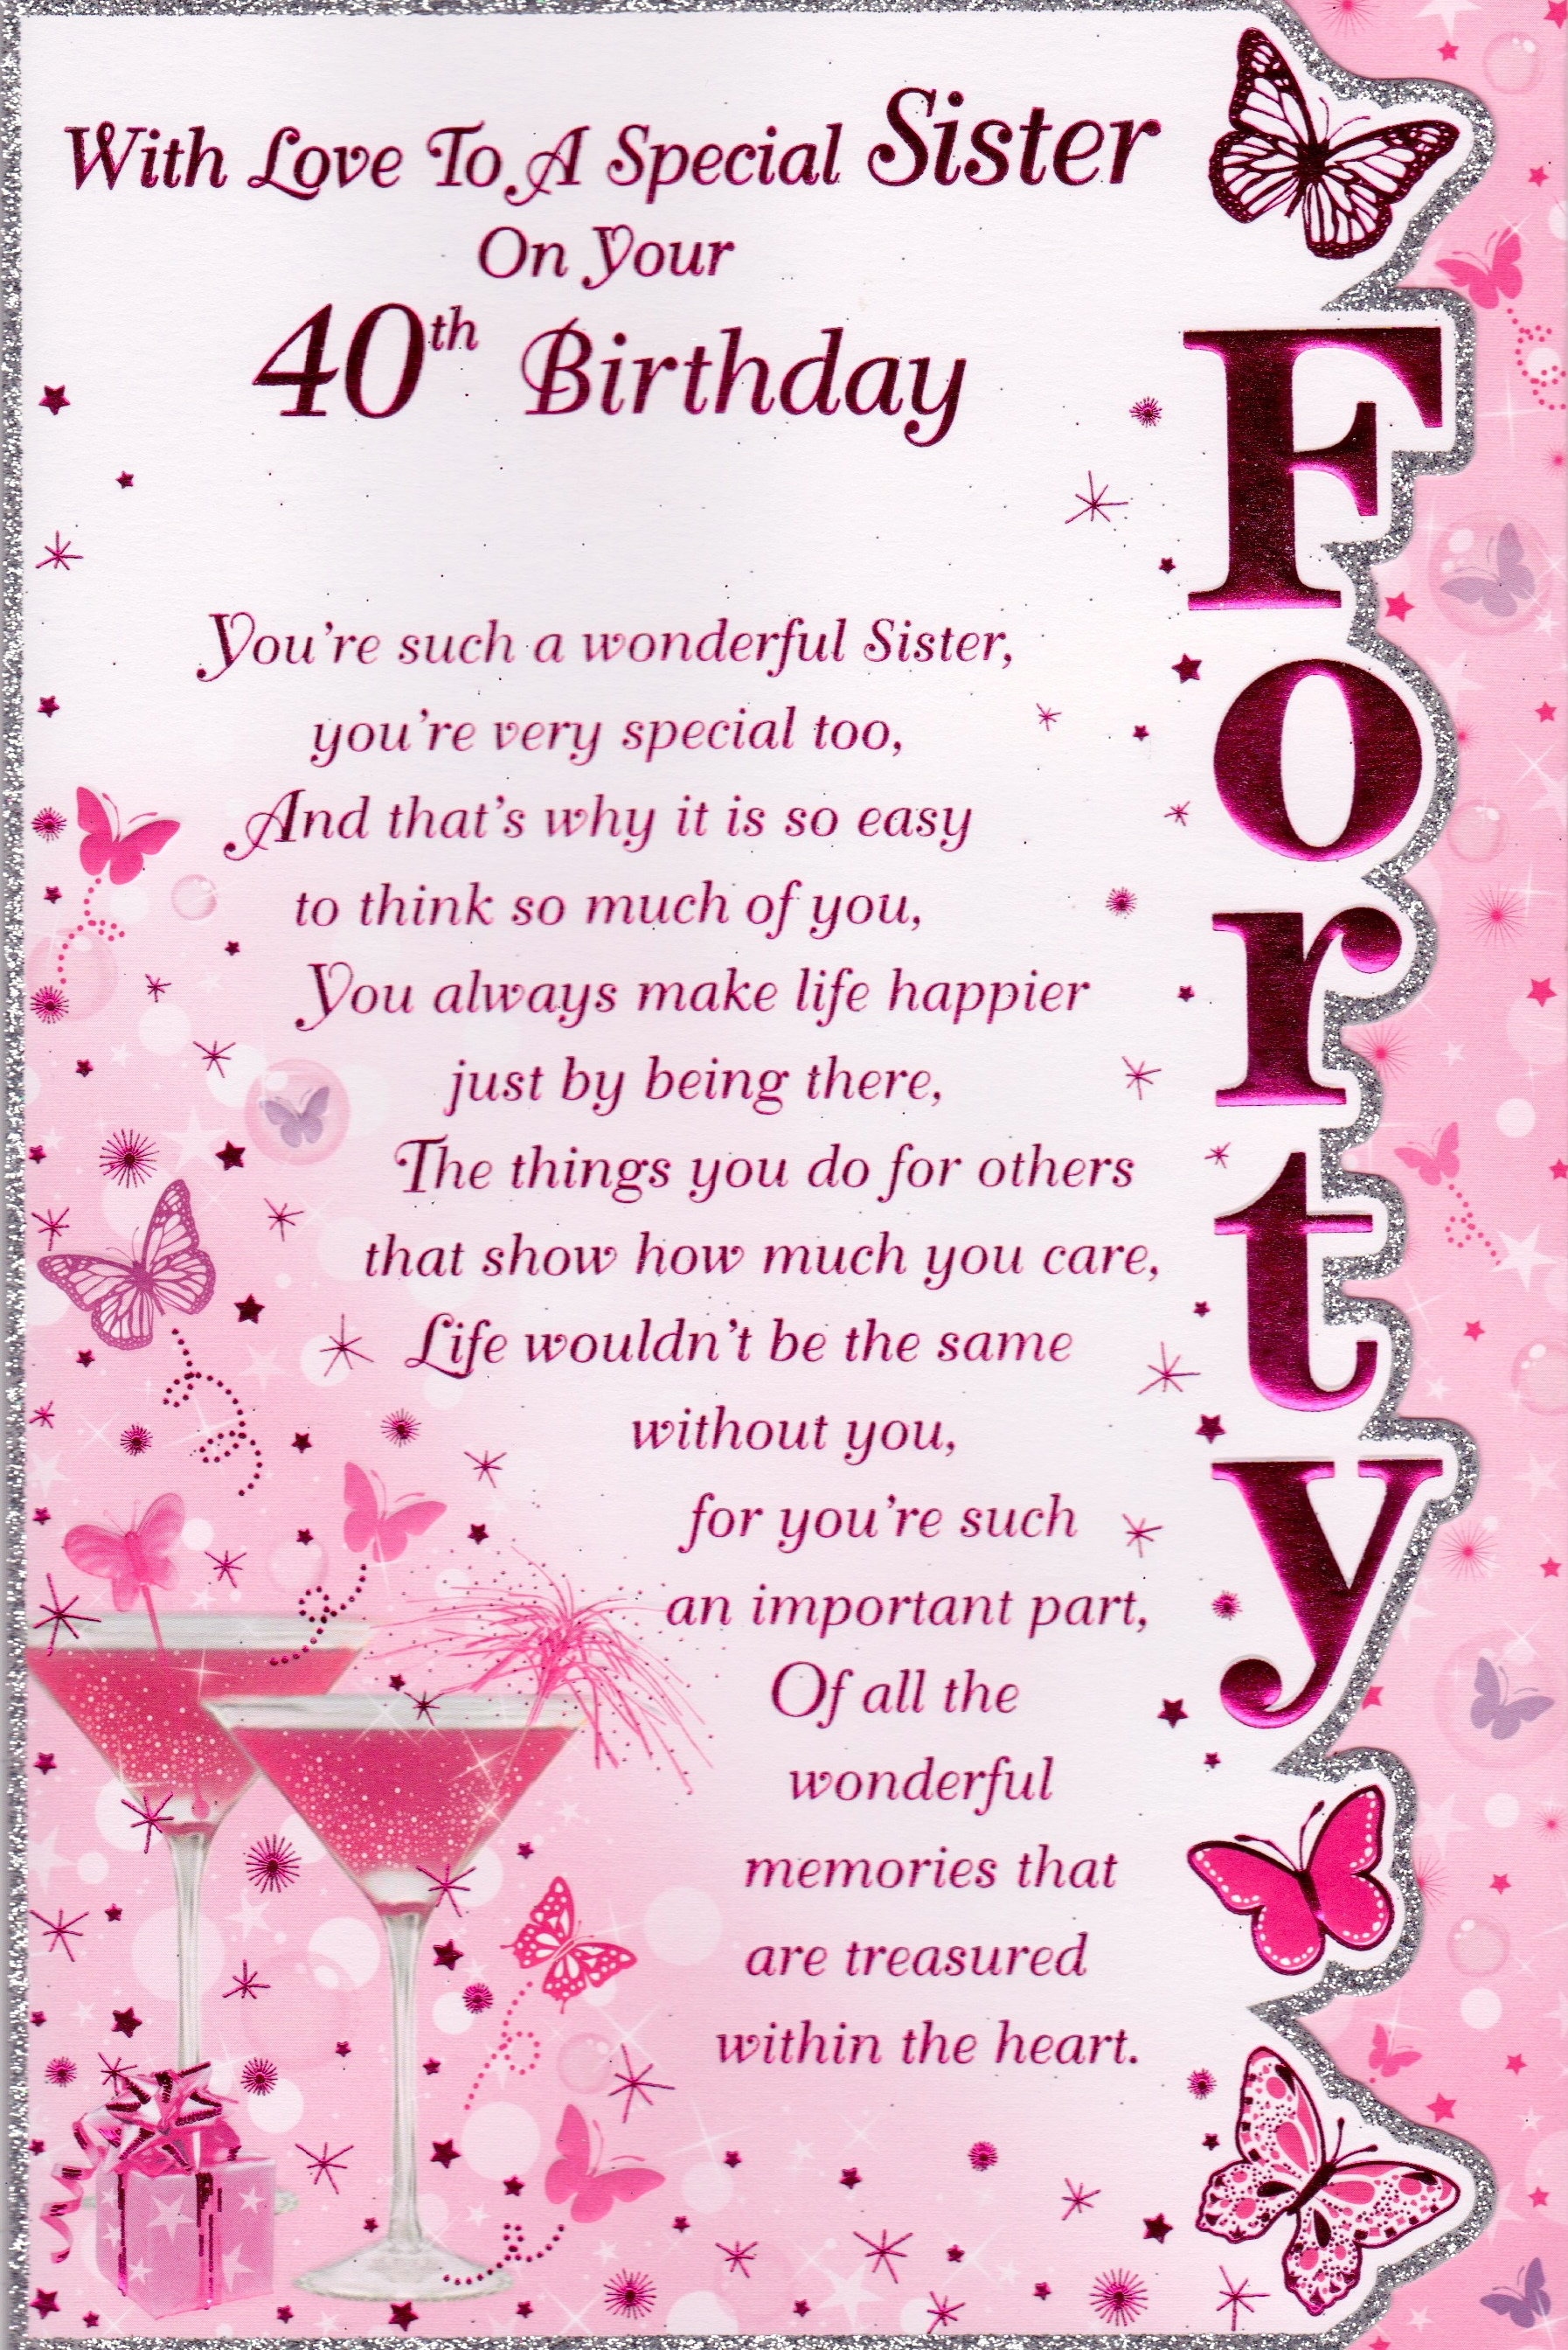 40th birthday greeting card messages ; 8290e09f13783c243487ca382c315d11